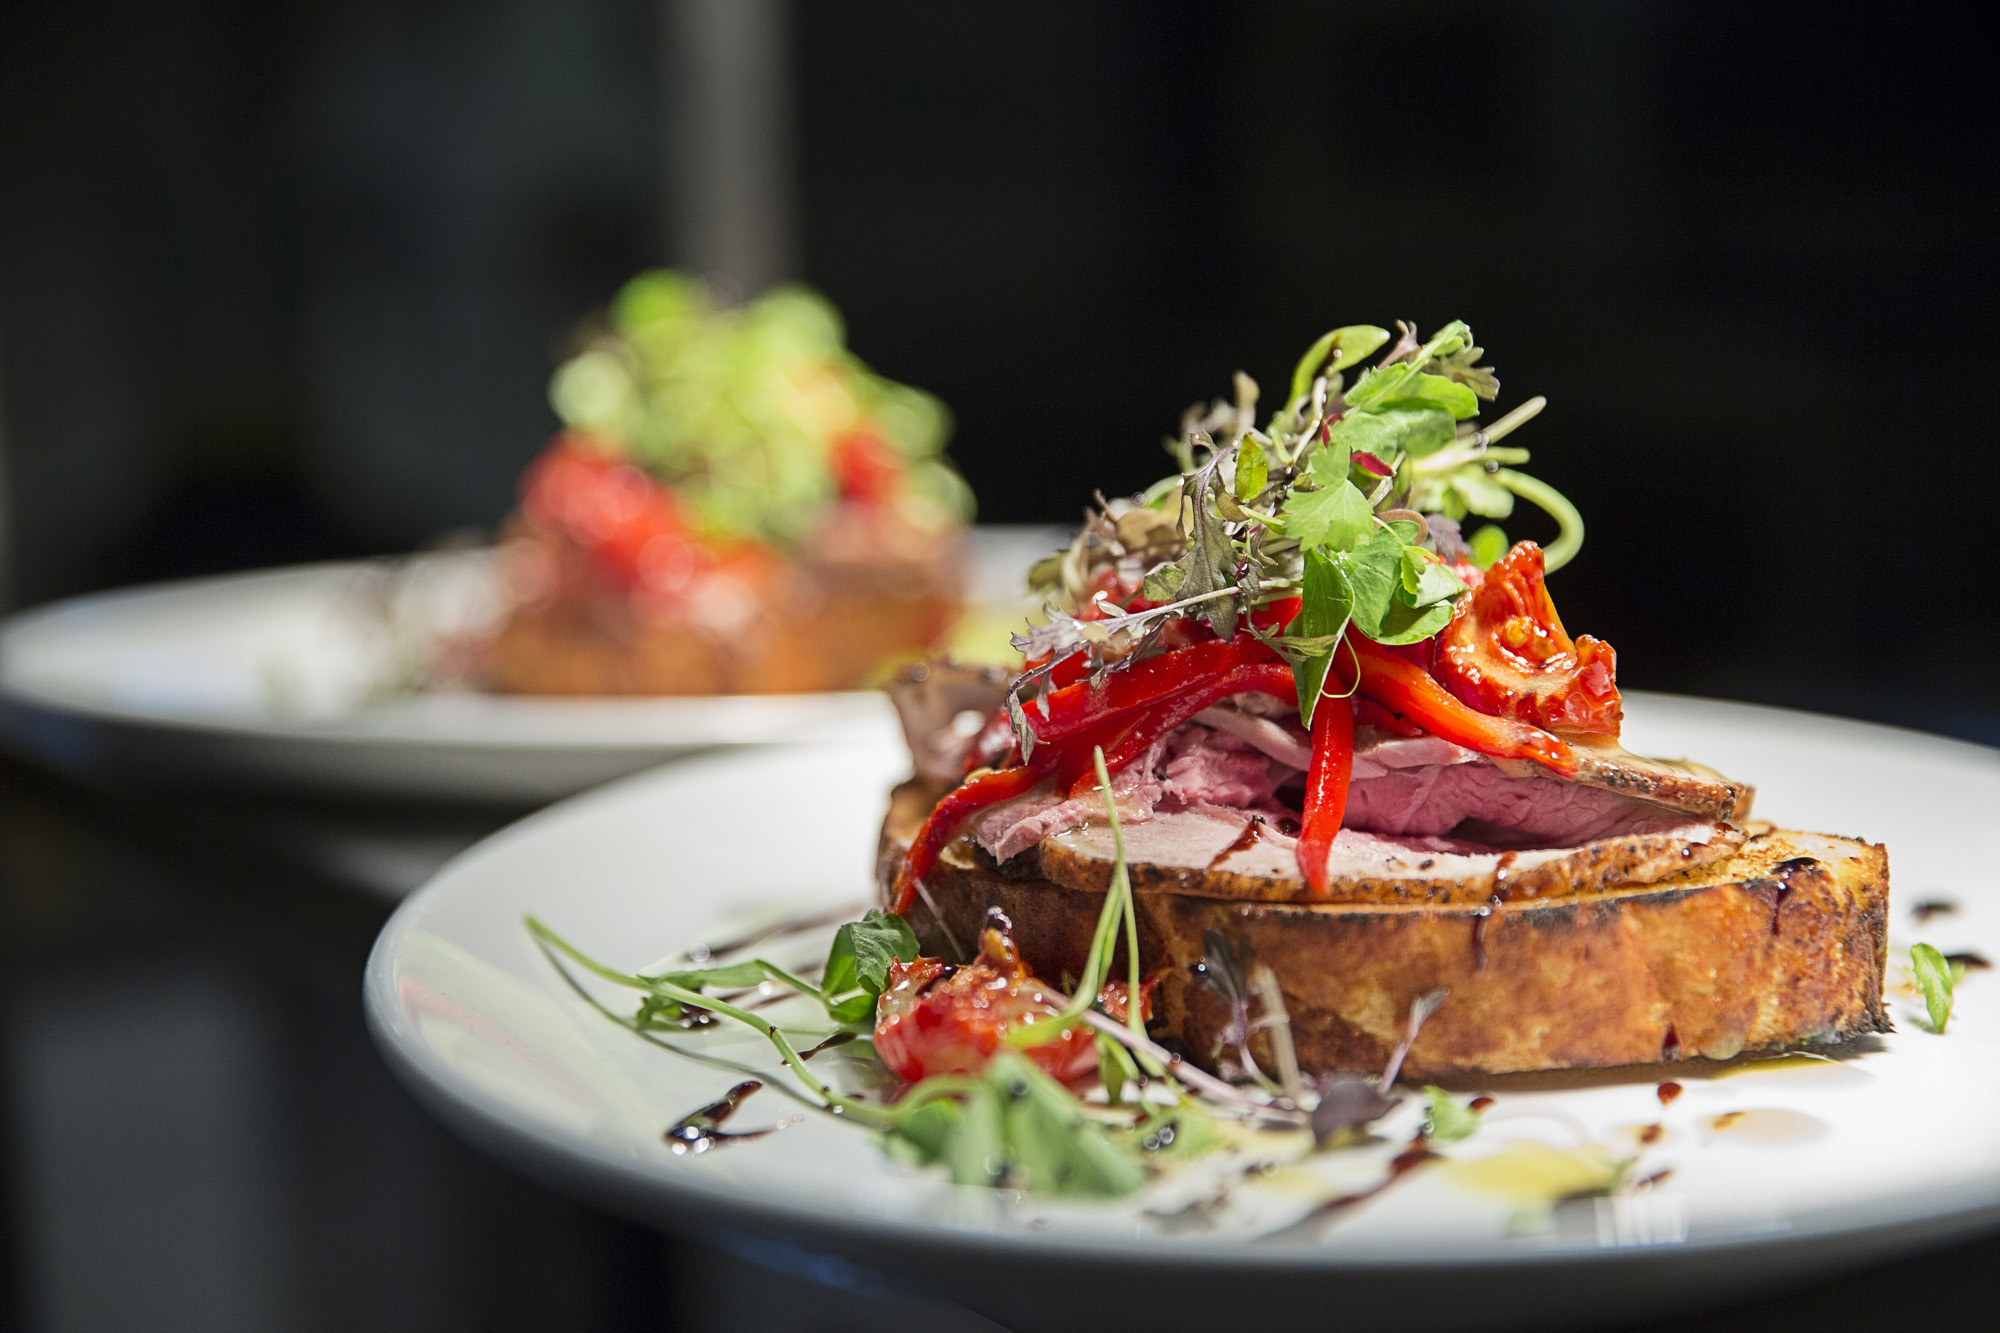 Shakespeare, Canterbury - Open sandwich